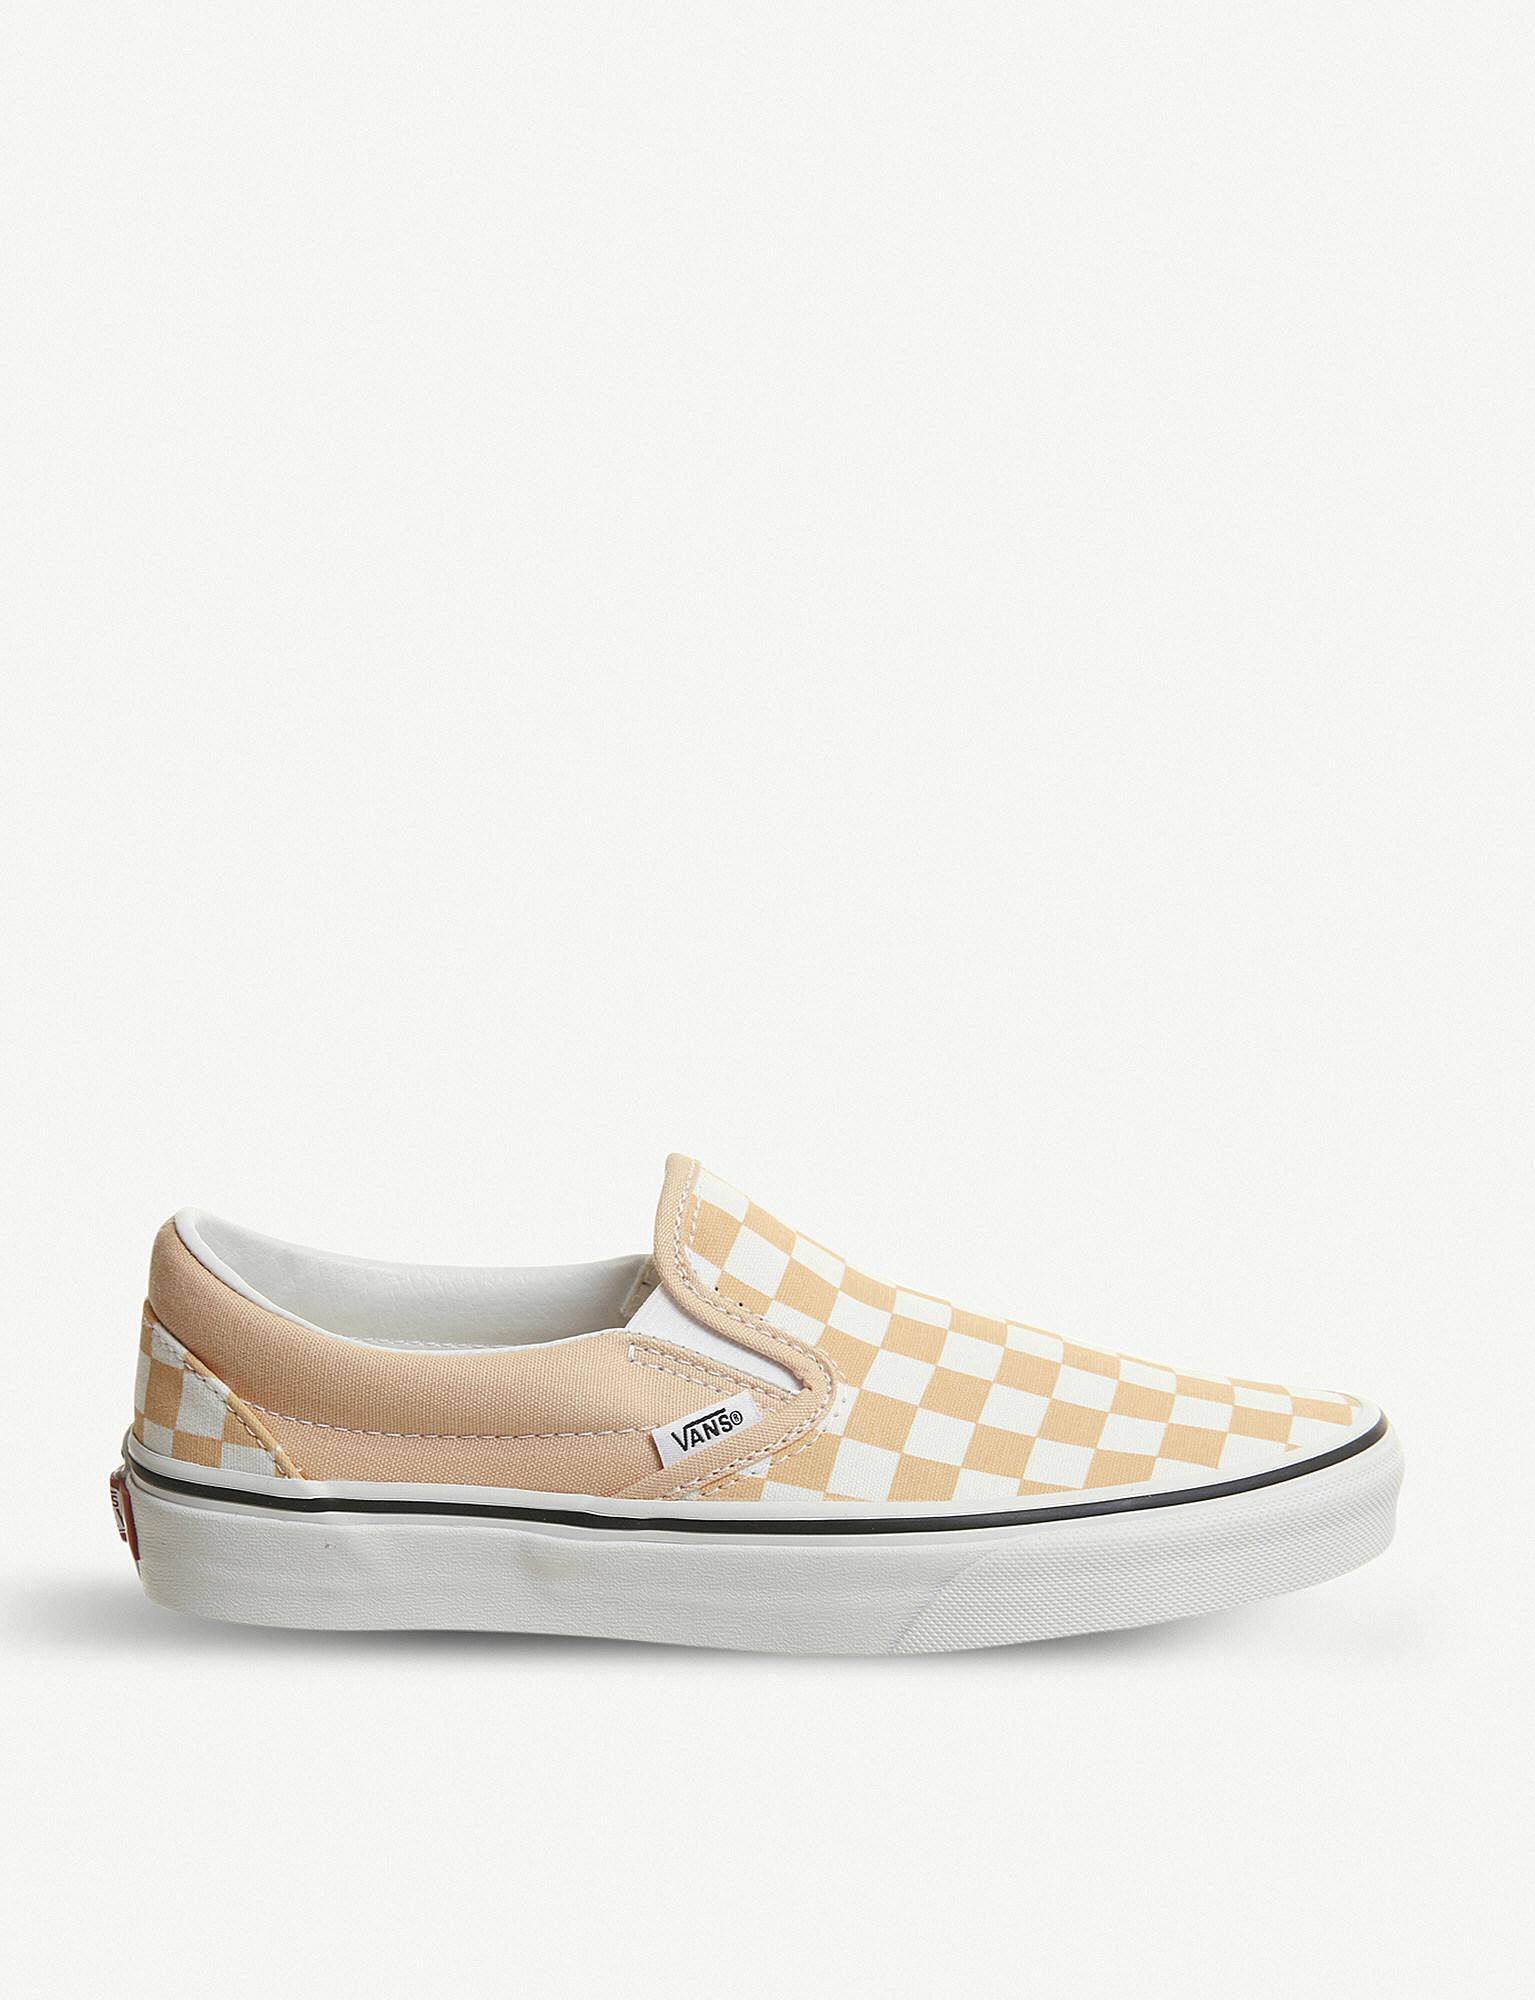 6b3ccd7c907a Lyst - Vans Classic Checkerboard-print Canvas Slip-on Trainers in White